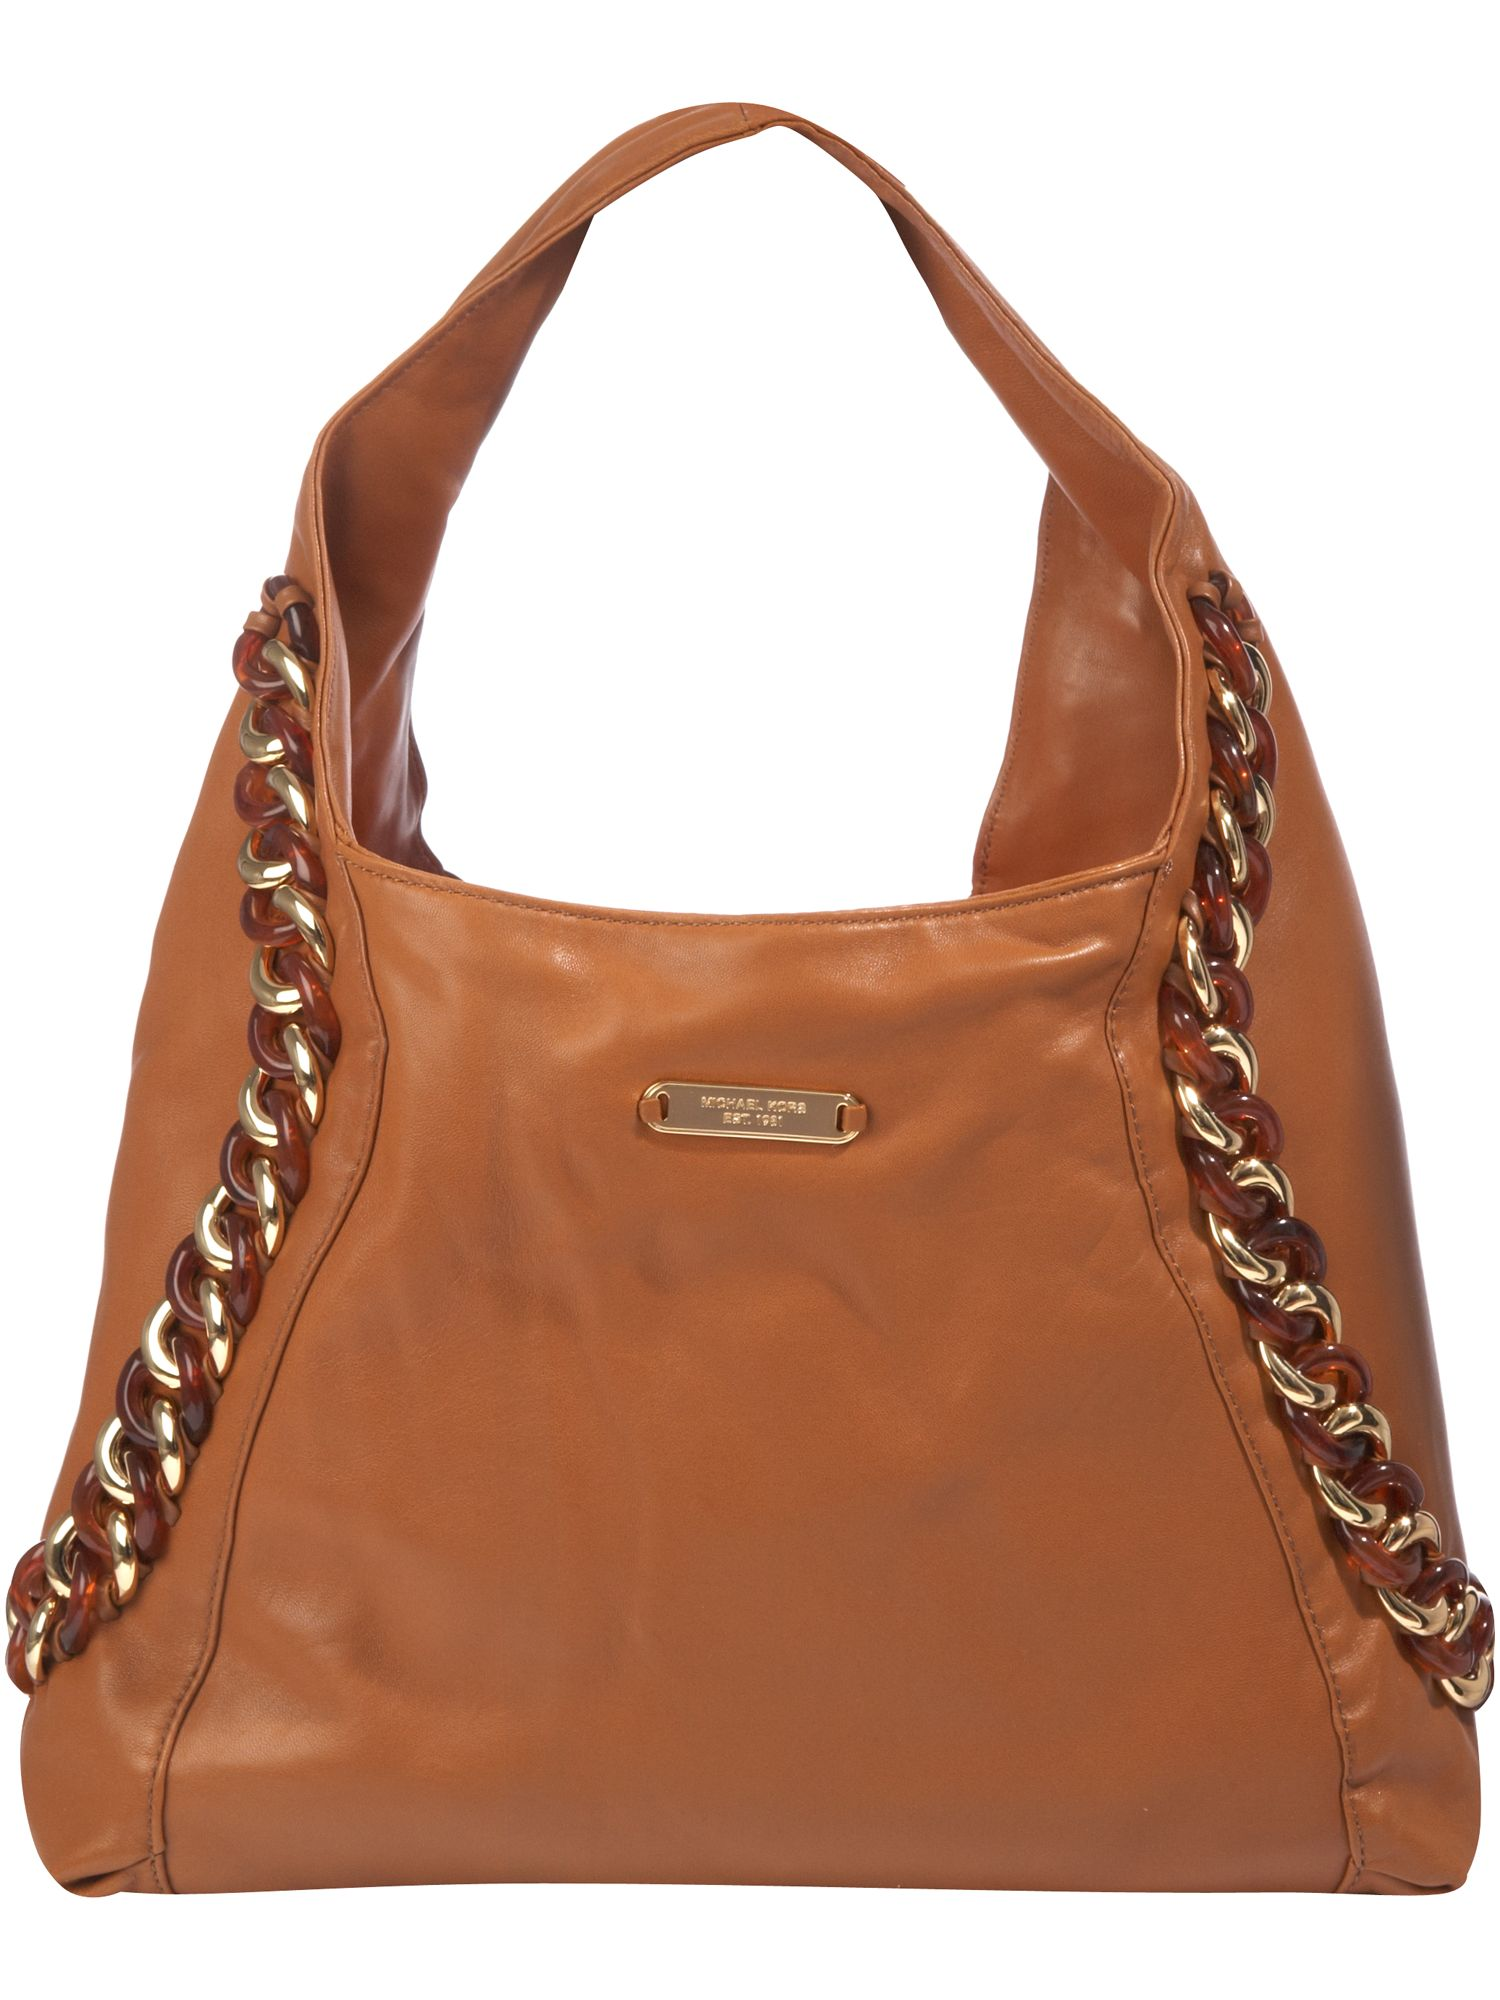 michael kors id chain large leather hobo bag review. Black Bedroom Furniture Sets. Home Design Ideas